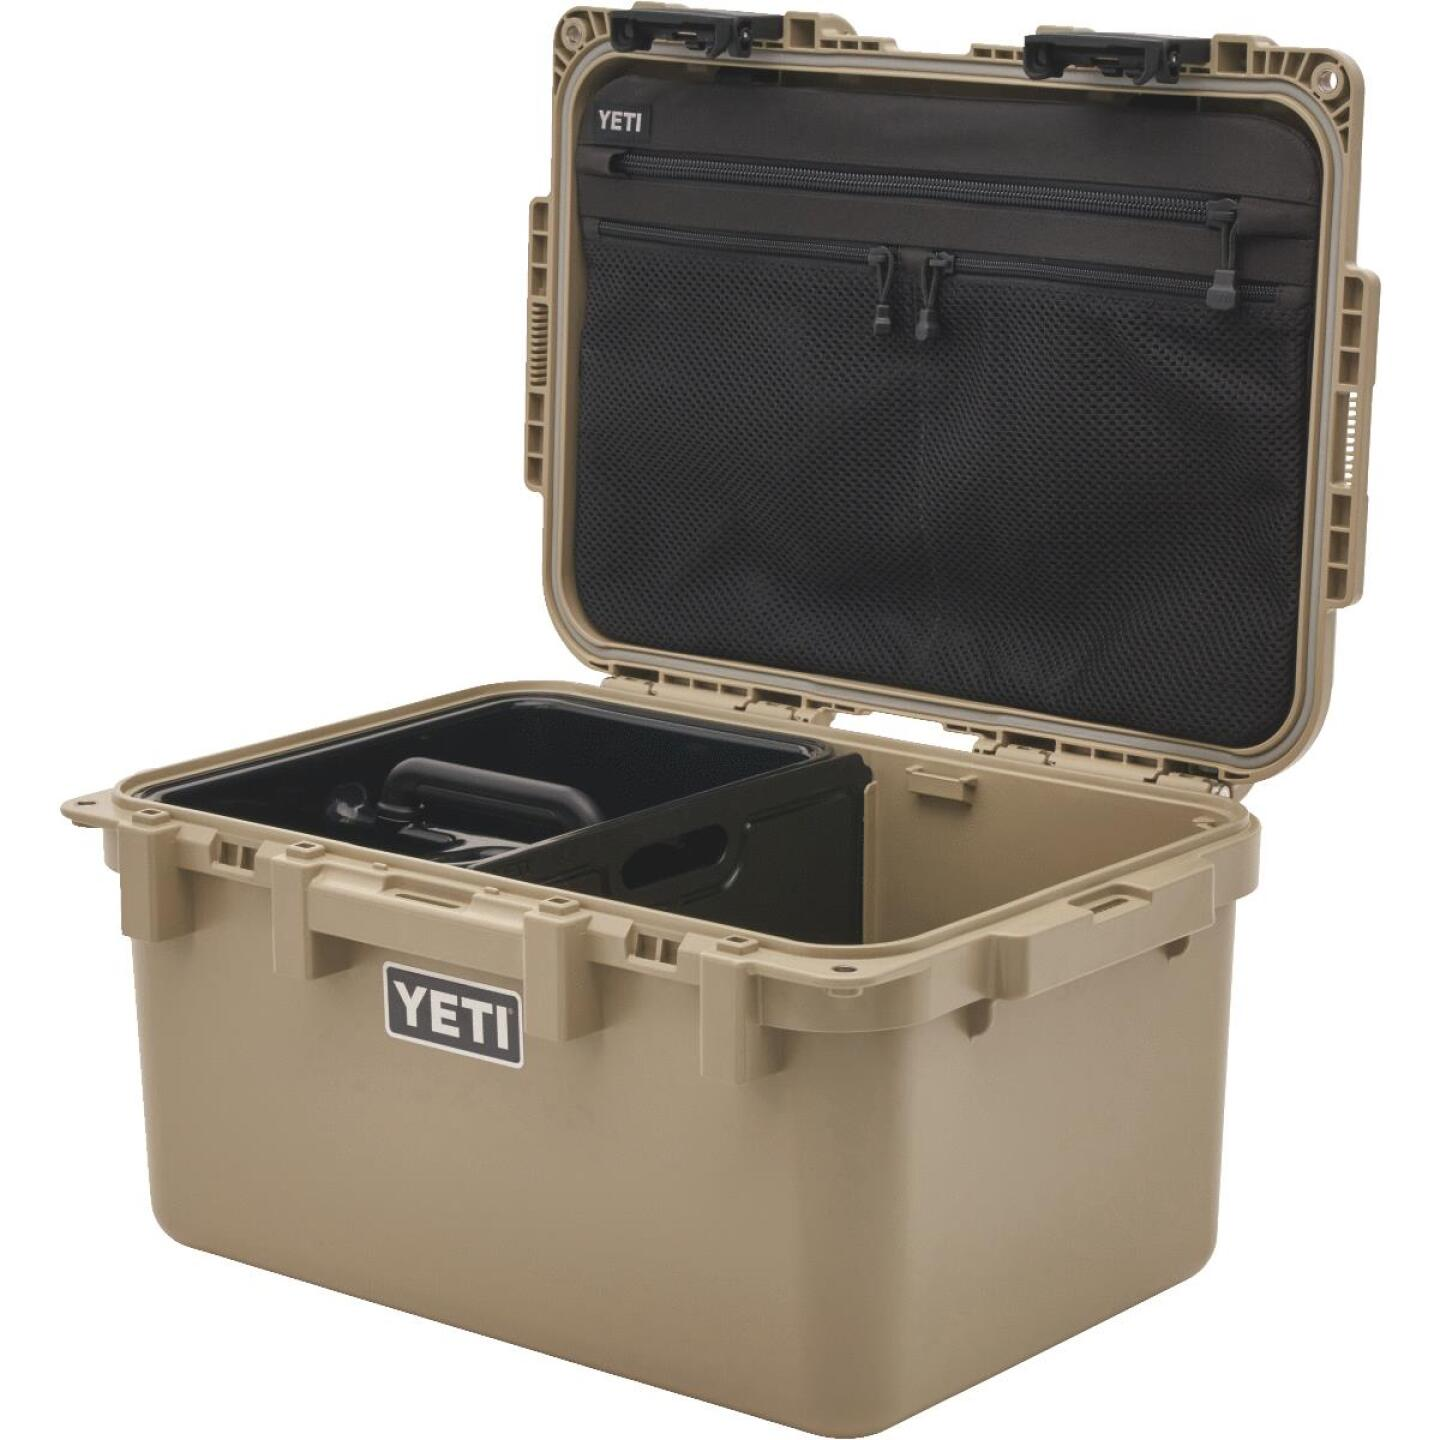 Yeti LoadOut GoBox 30 14.7 In. W. x 11.19 In. H. x 20.58 In. L. Tan Tote Image 2